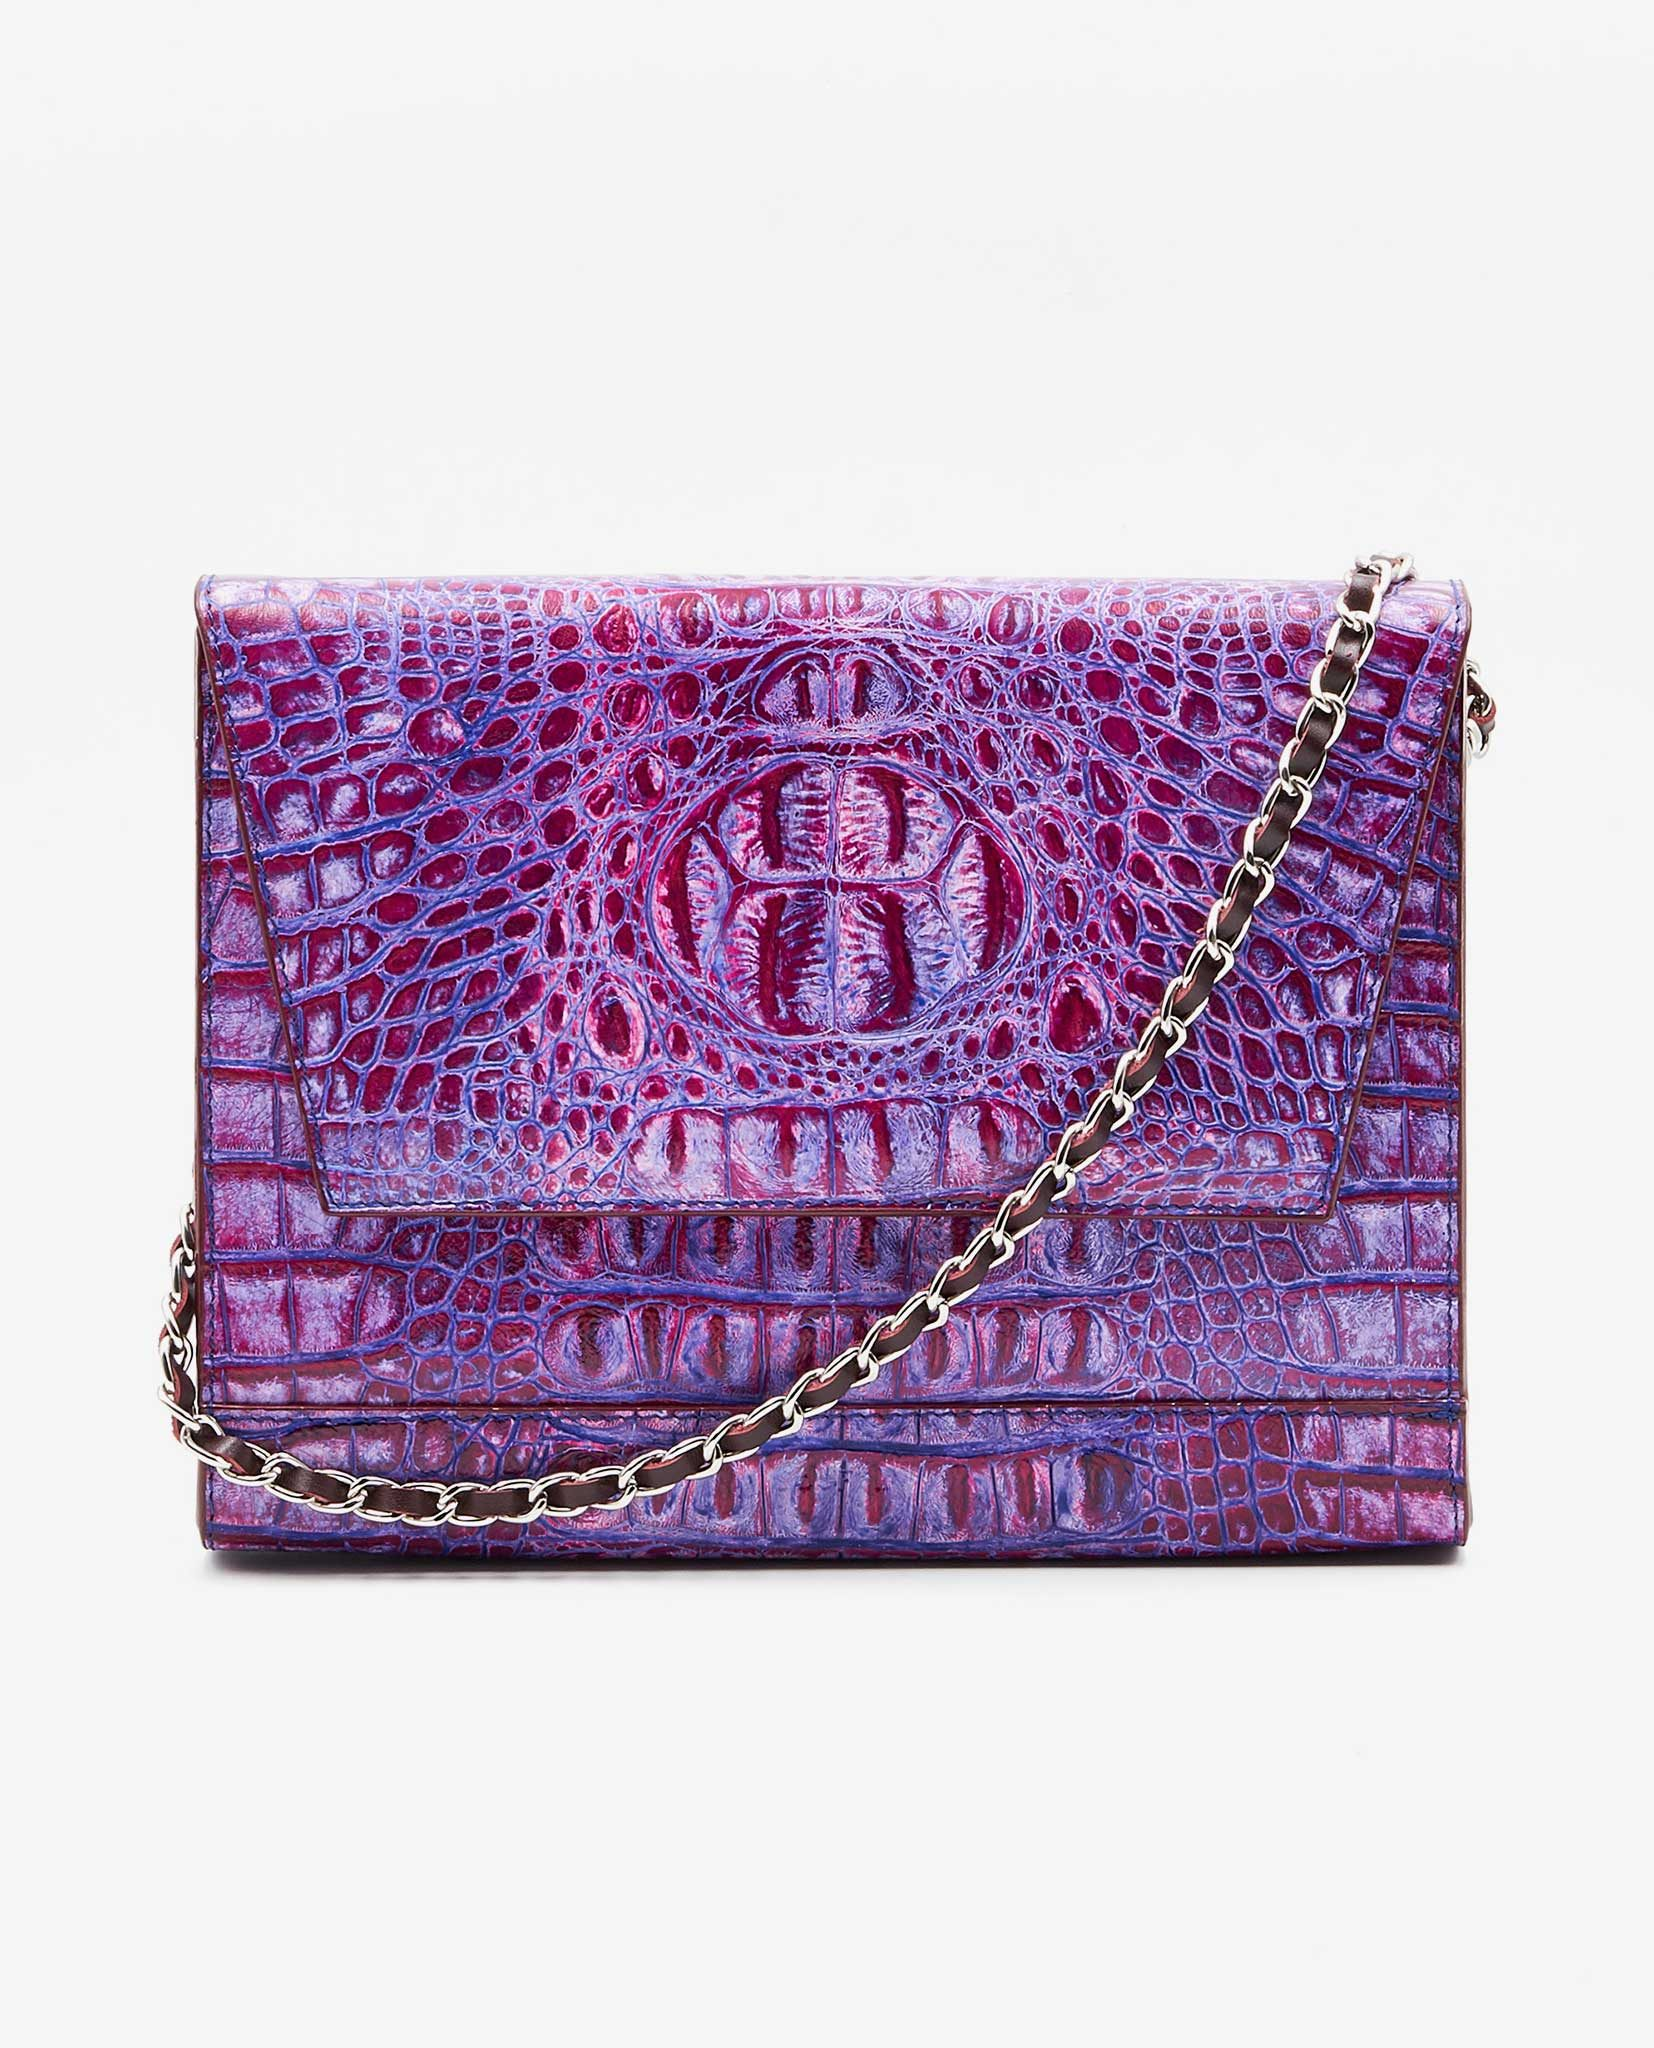 SOOFRE-Berlin-unique-Clutch-croco-purple-lilac-dove-grey-FRONT